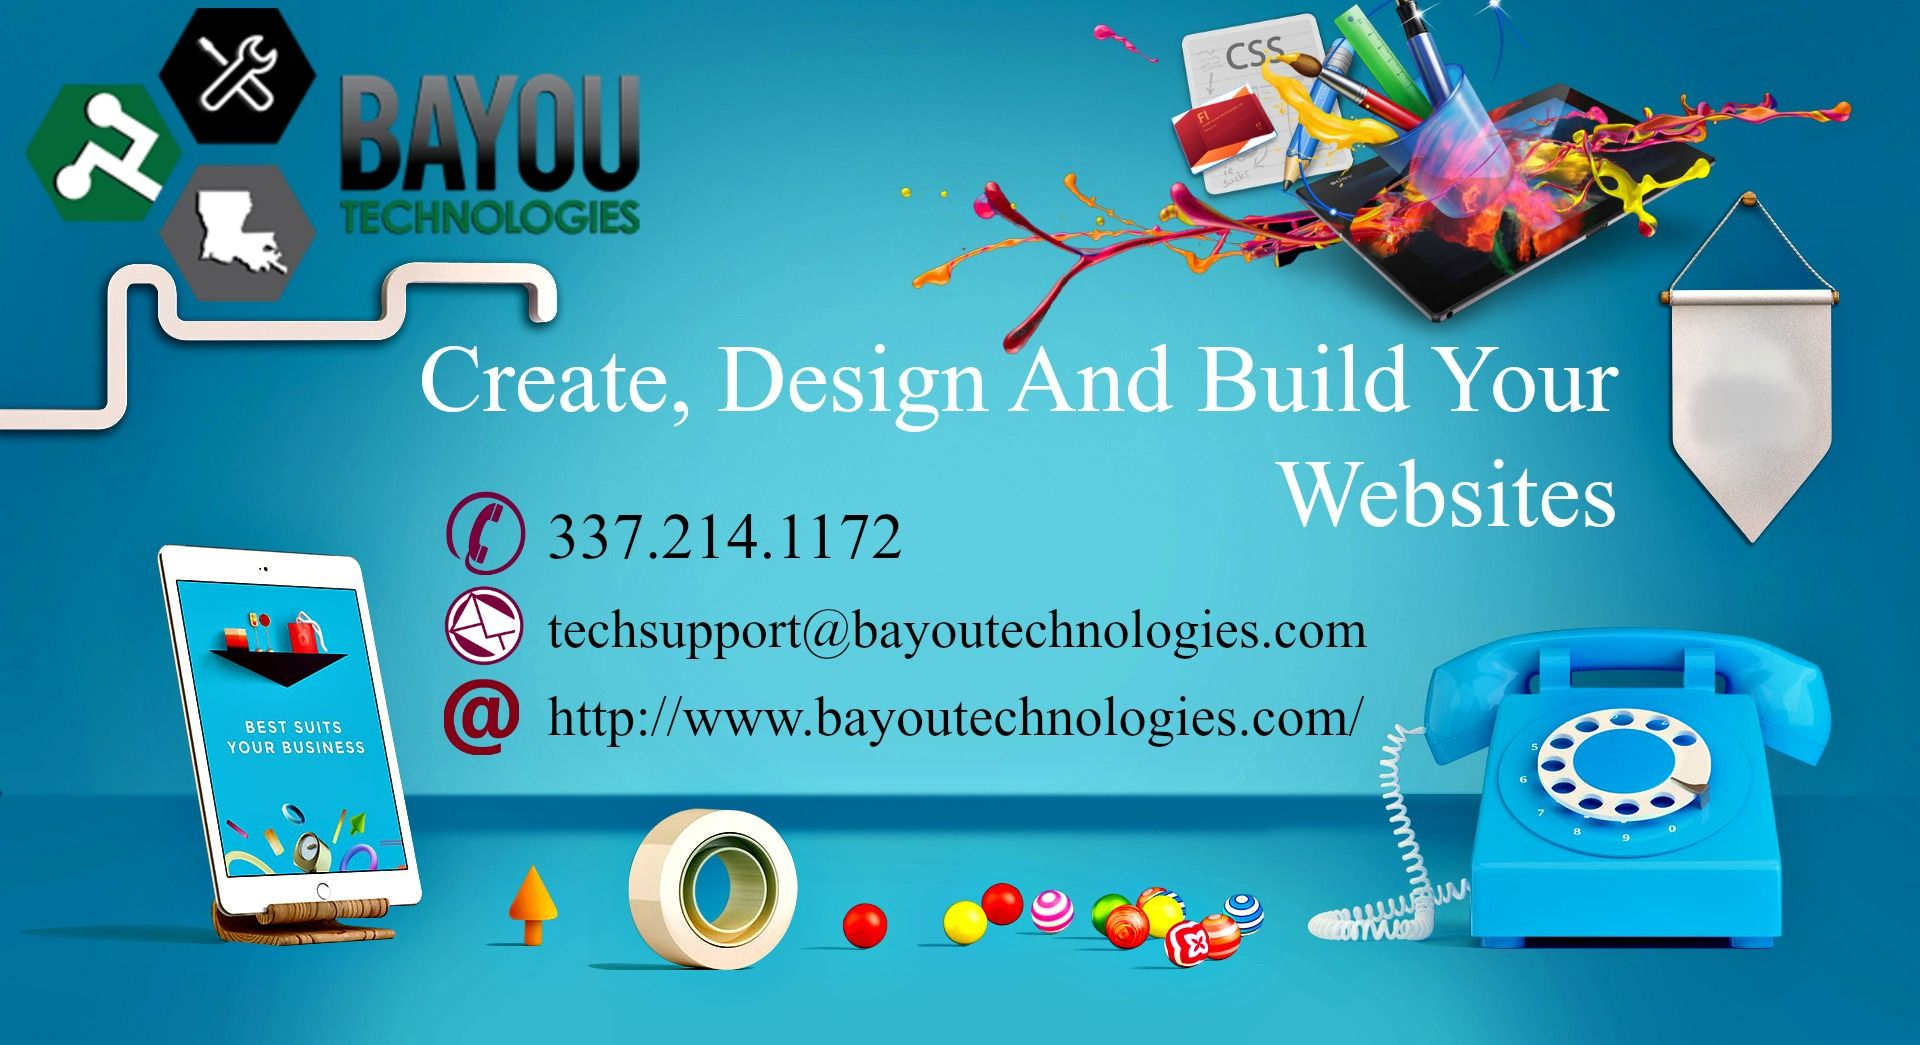 Bayou Technologies offers high quality responsive mobile friendly website design.We create business websites that work for you.Our websites are Eye-Catching, Professional, and Cost-Effective. Call today: 337.214.1172